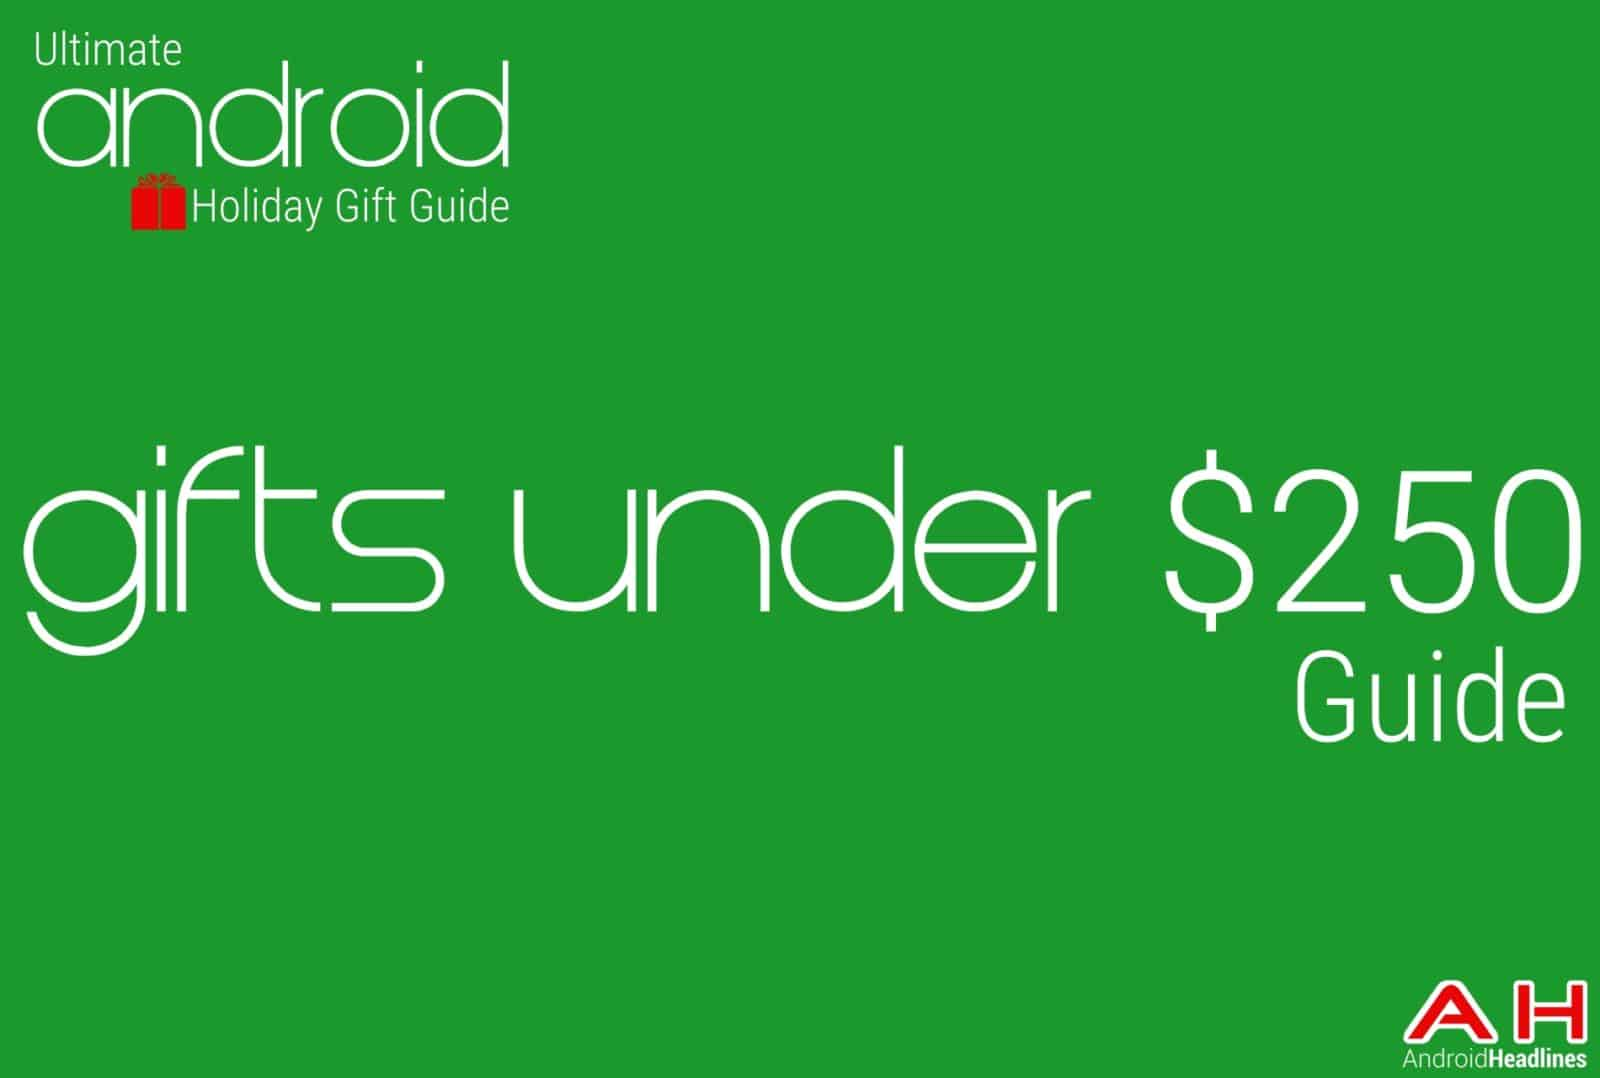 Best gifts under $250 Guide - Android Holiday Gift Guide Top 10